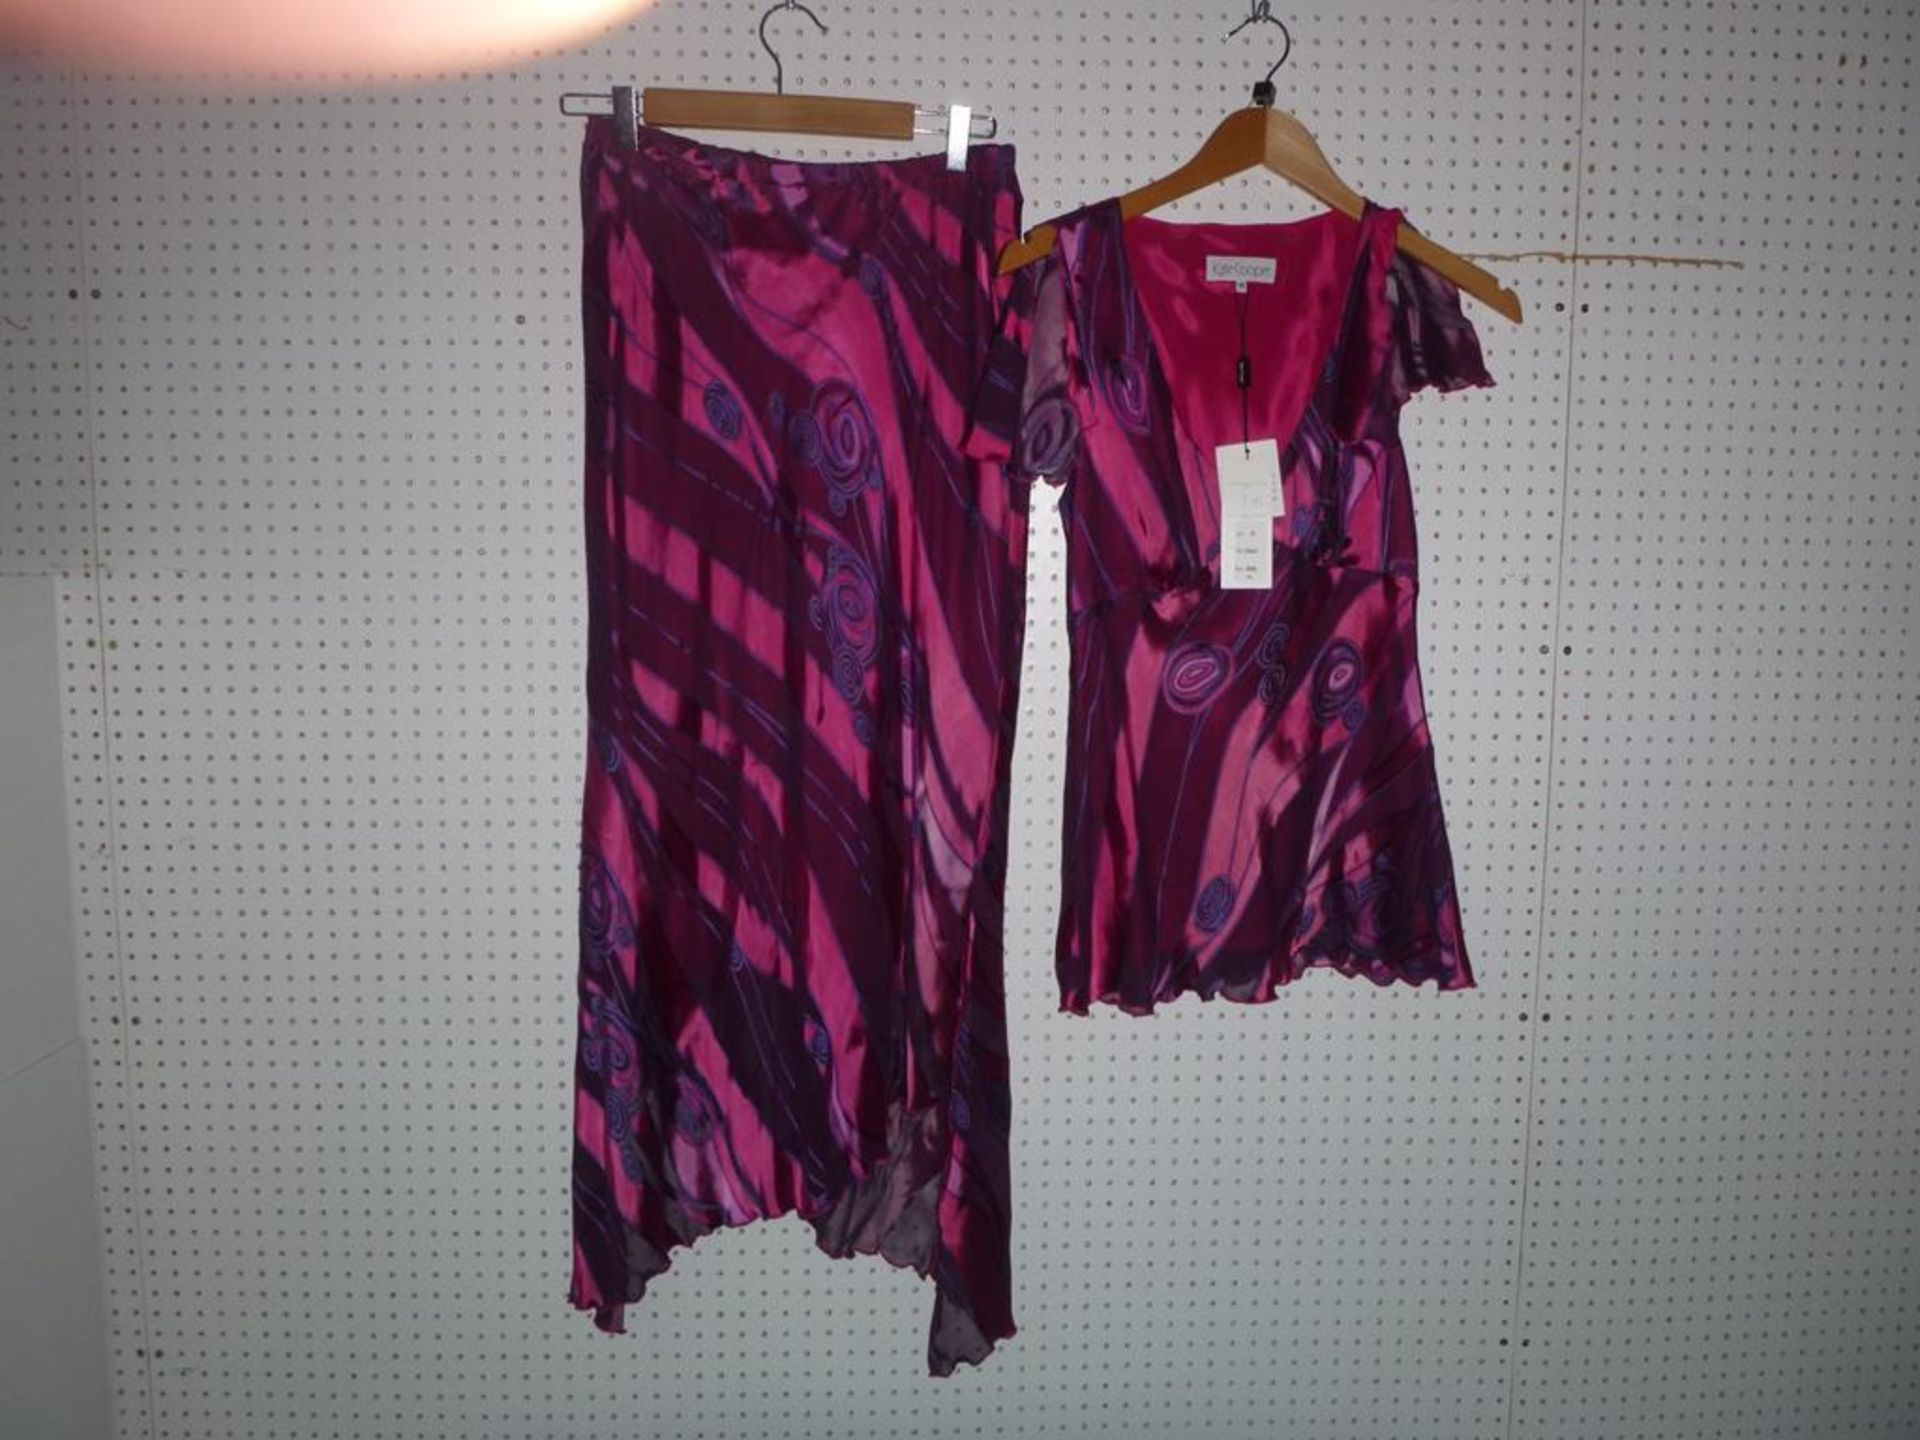 Lot 8020 - * Five Ladies Garments to include examples by Luis Givit, Olsen, ZM Woman, Kate Cooper. Please see